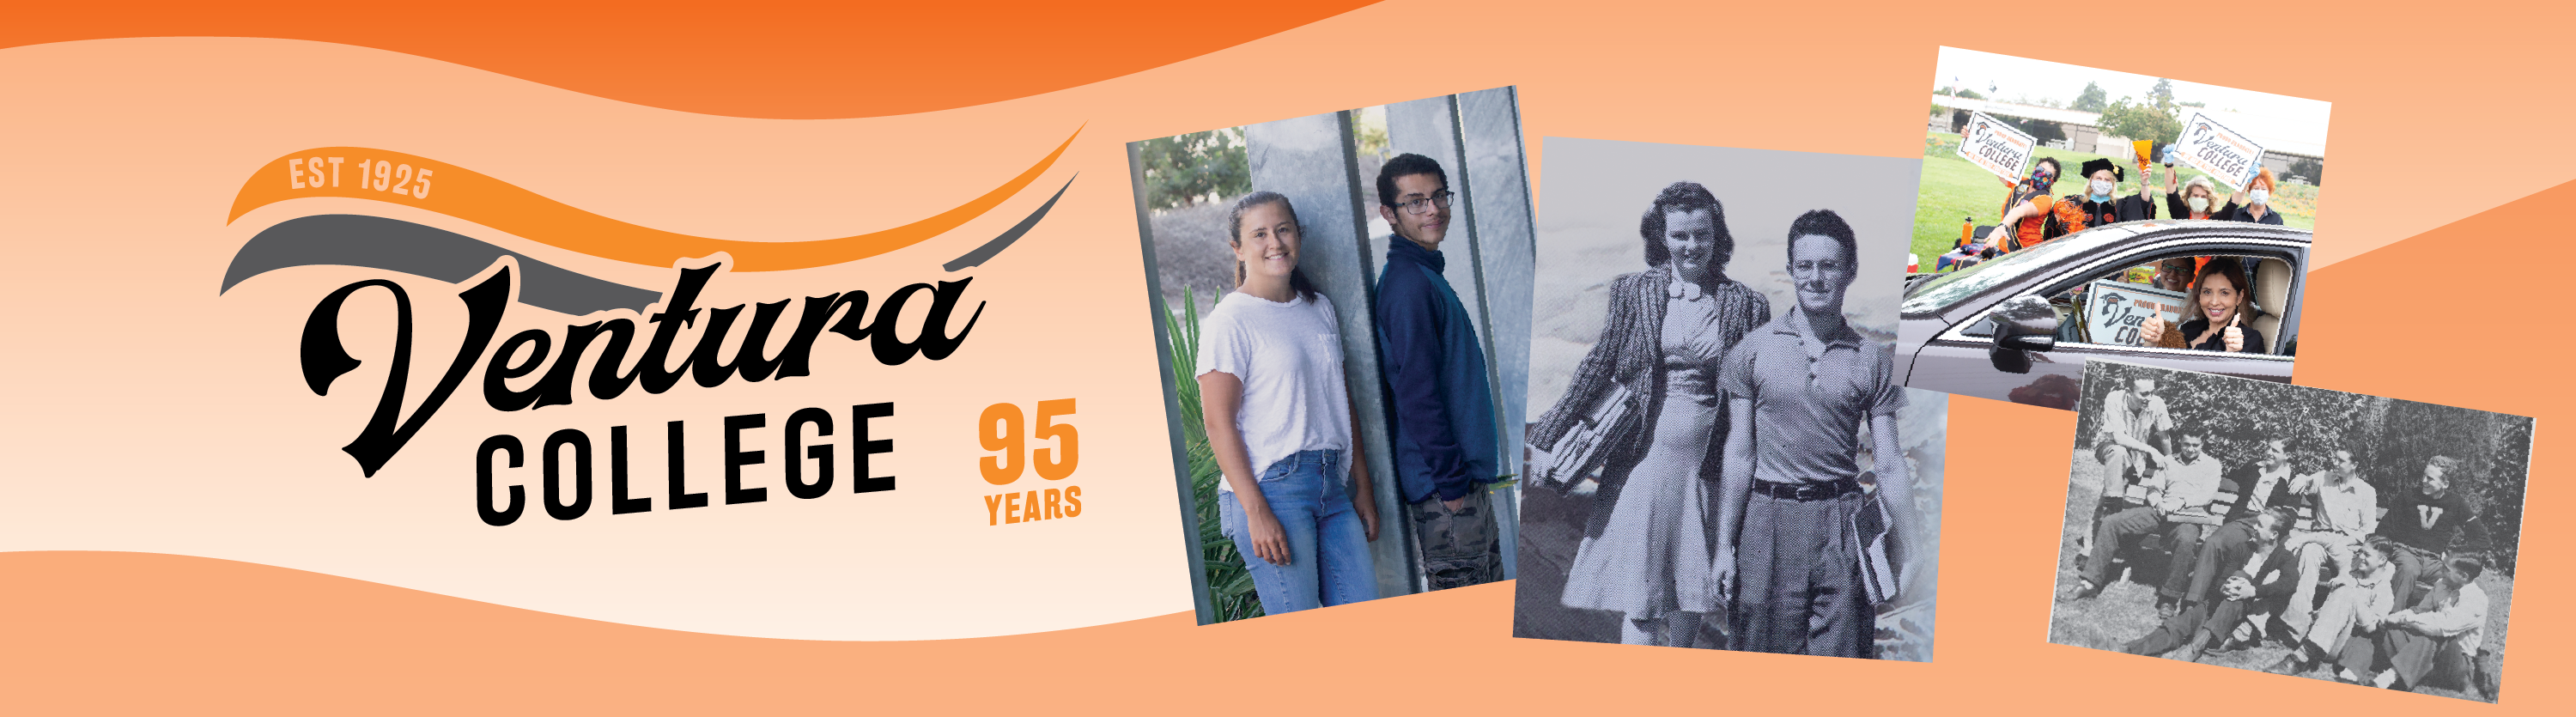 ventura college logo with historical photos of students